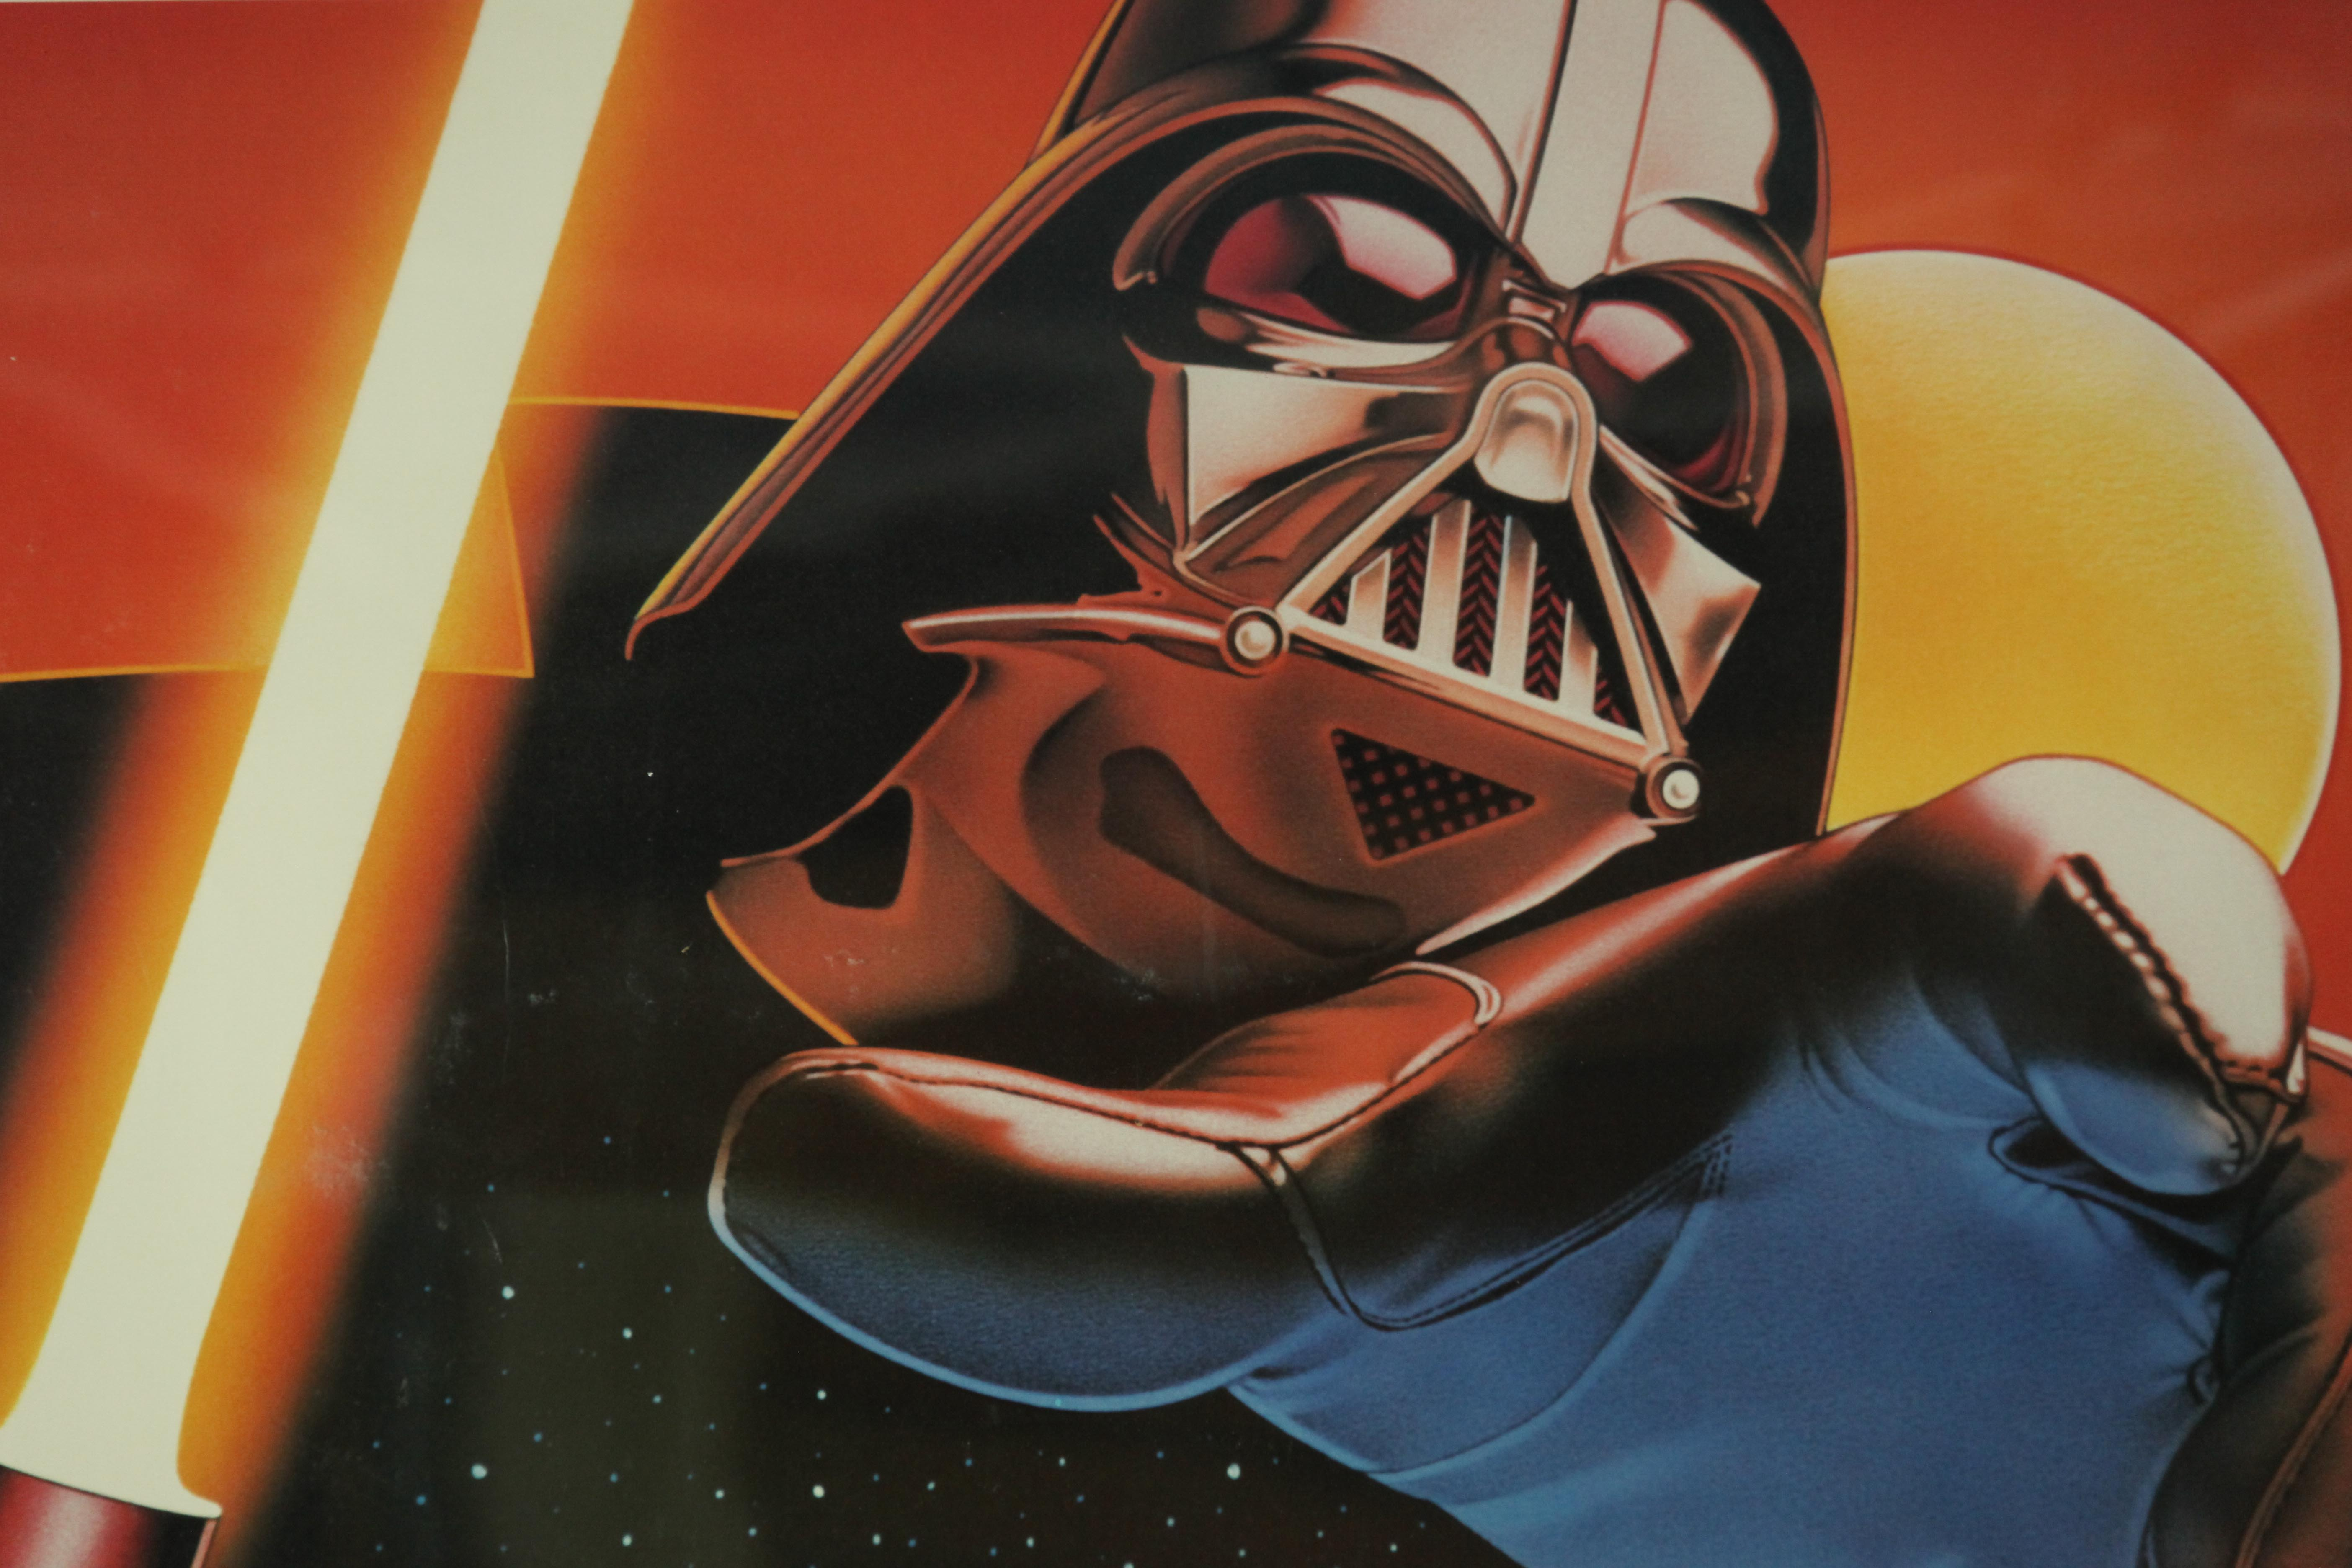 Collectibles & Star Wars (1)